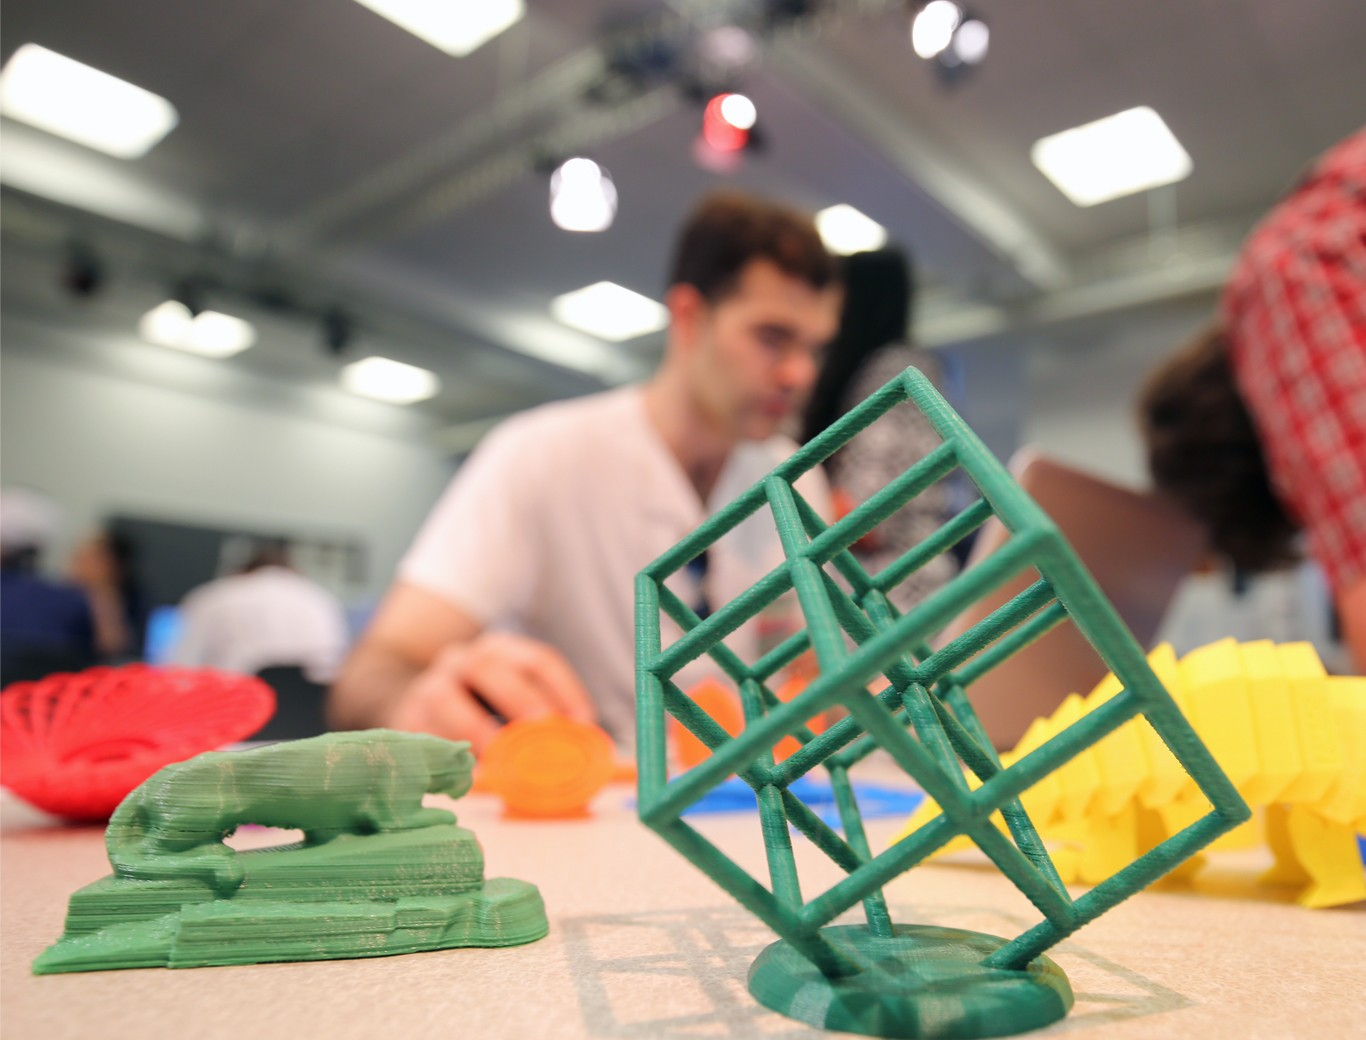 Students participating in Making of the Masses workshop, creating 3D printed objects, such as a cube, the nittany lion shrine, and other bright colored geometric objects.